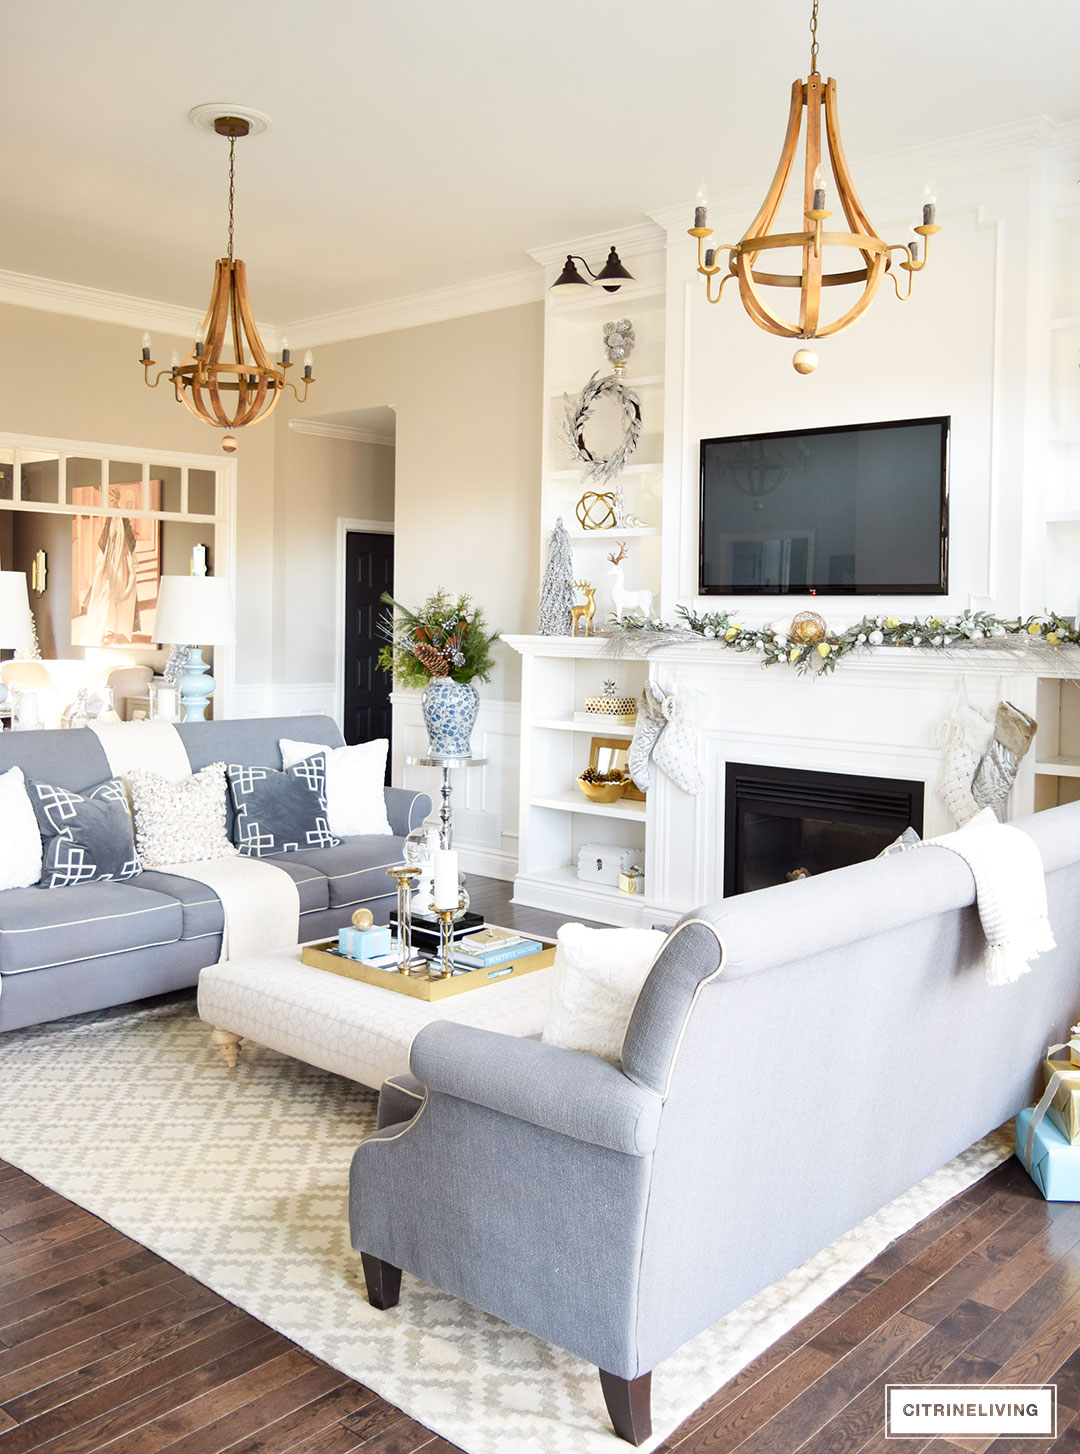 Christmas Home Tour -Gorgeous living room with mixed metallics and icy blue create a chic Holiday theme